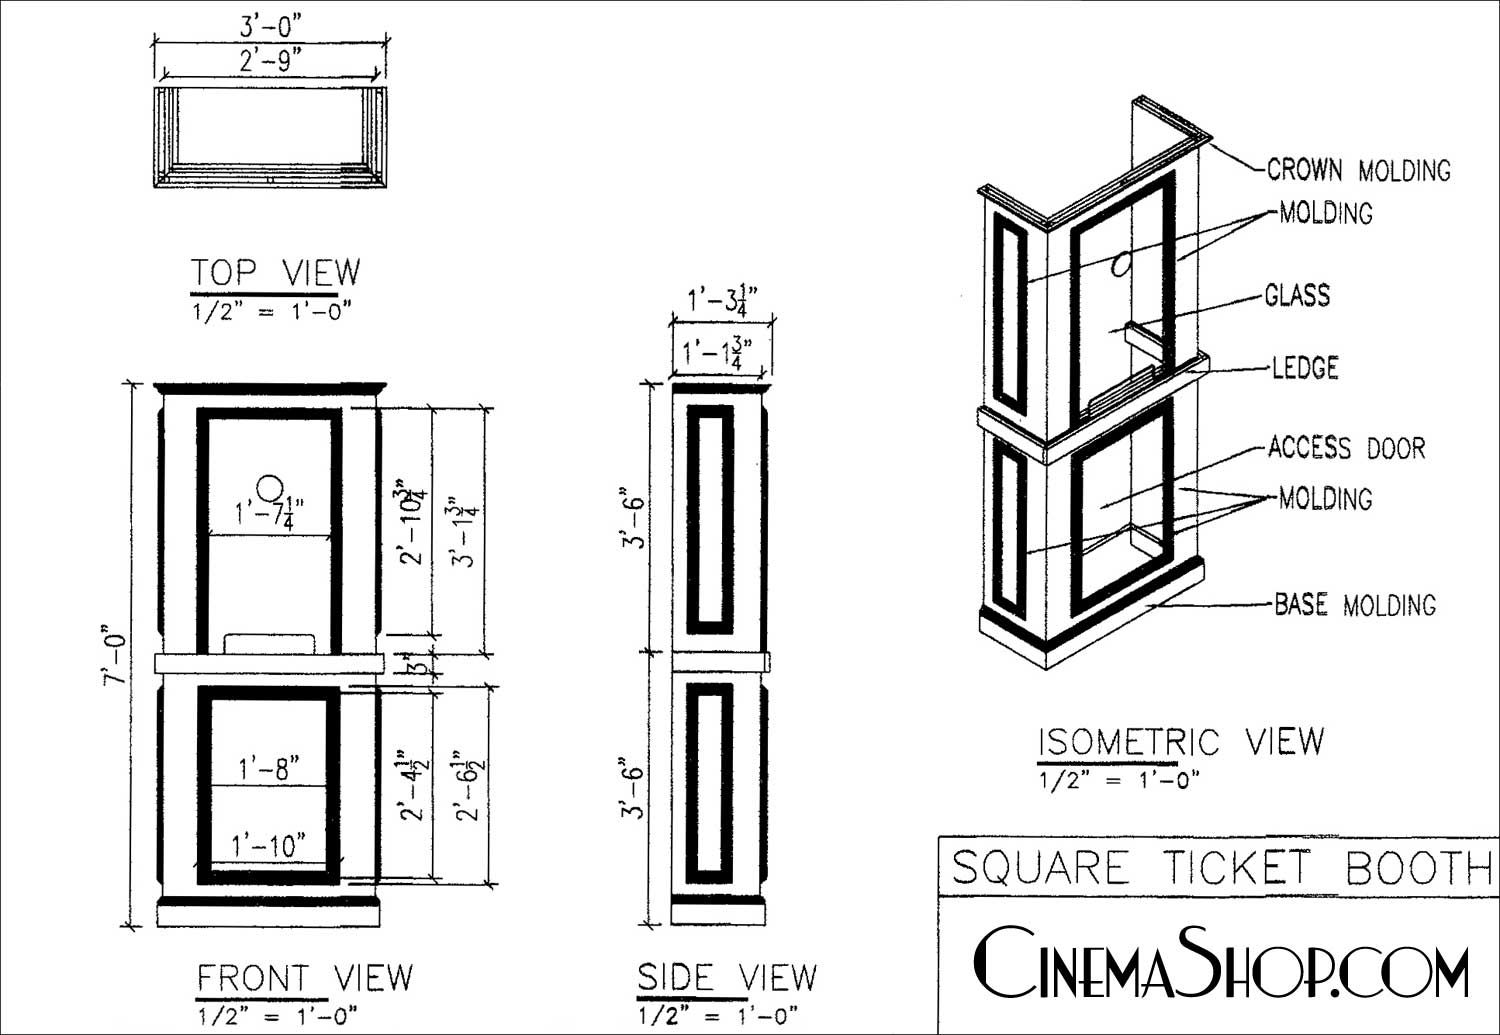 Home Theater Entrance With Ticket Booth